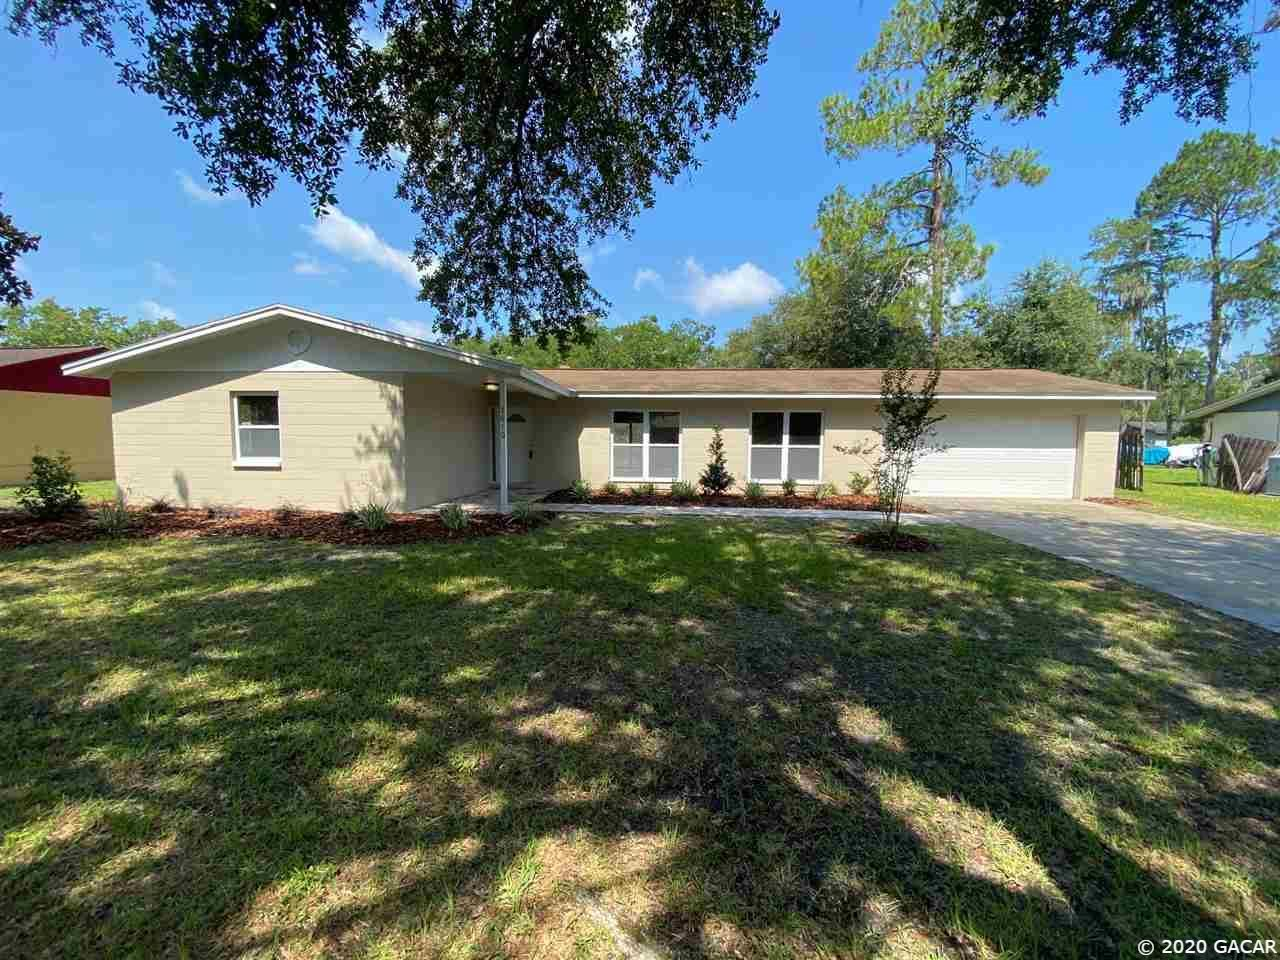 5610 NW 27 Terrace, Gainesville, FL 32653 - #: 436302